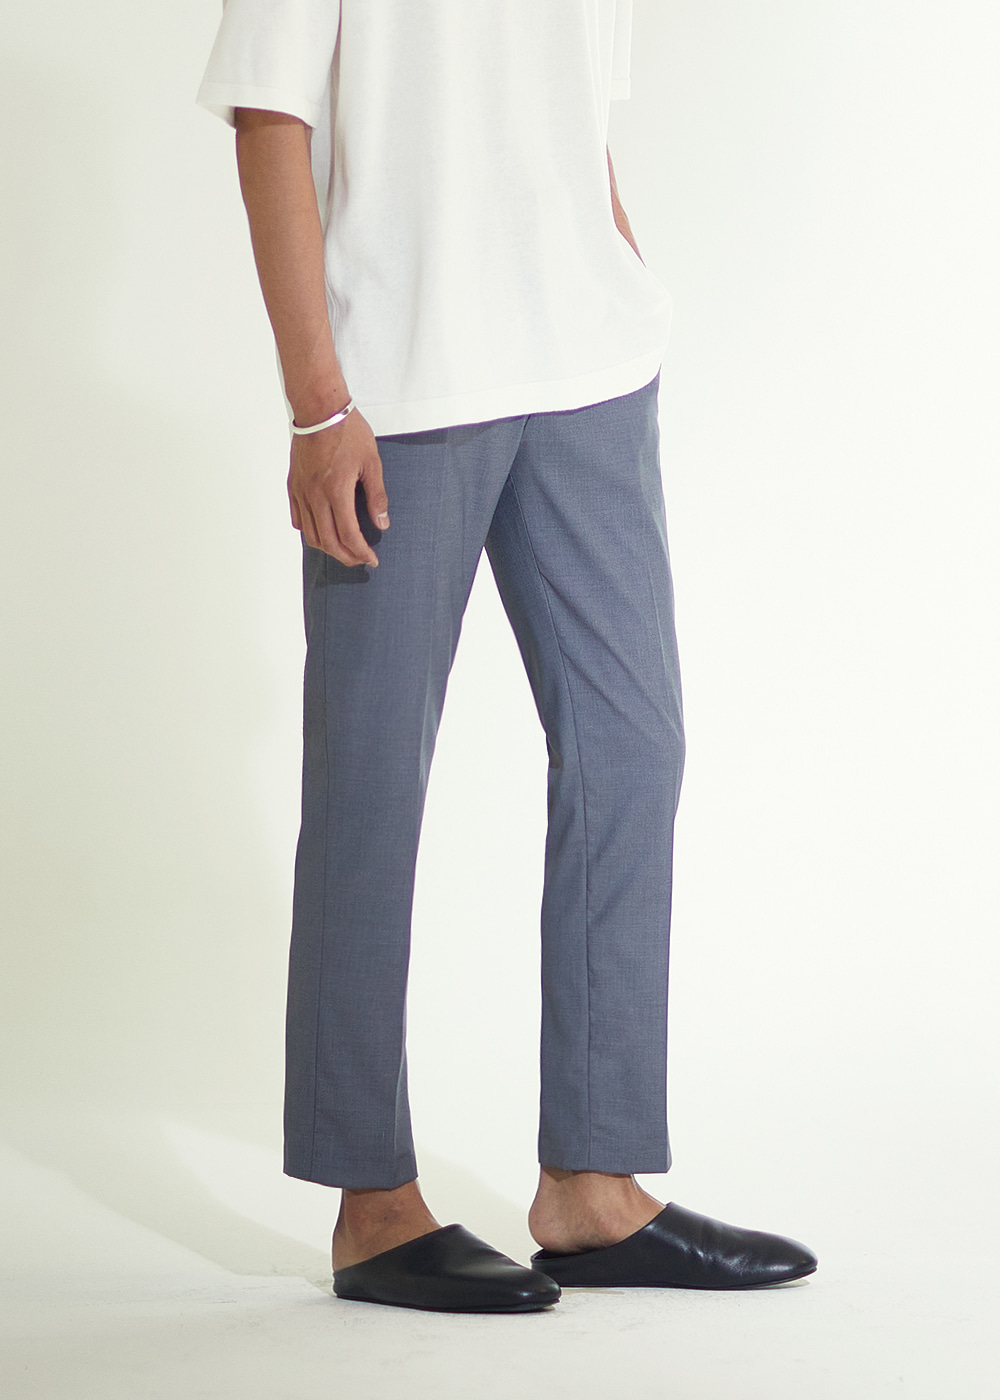 204 TAPERED REGULAR FIT SLACKS MELANGE GREY